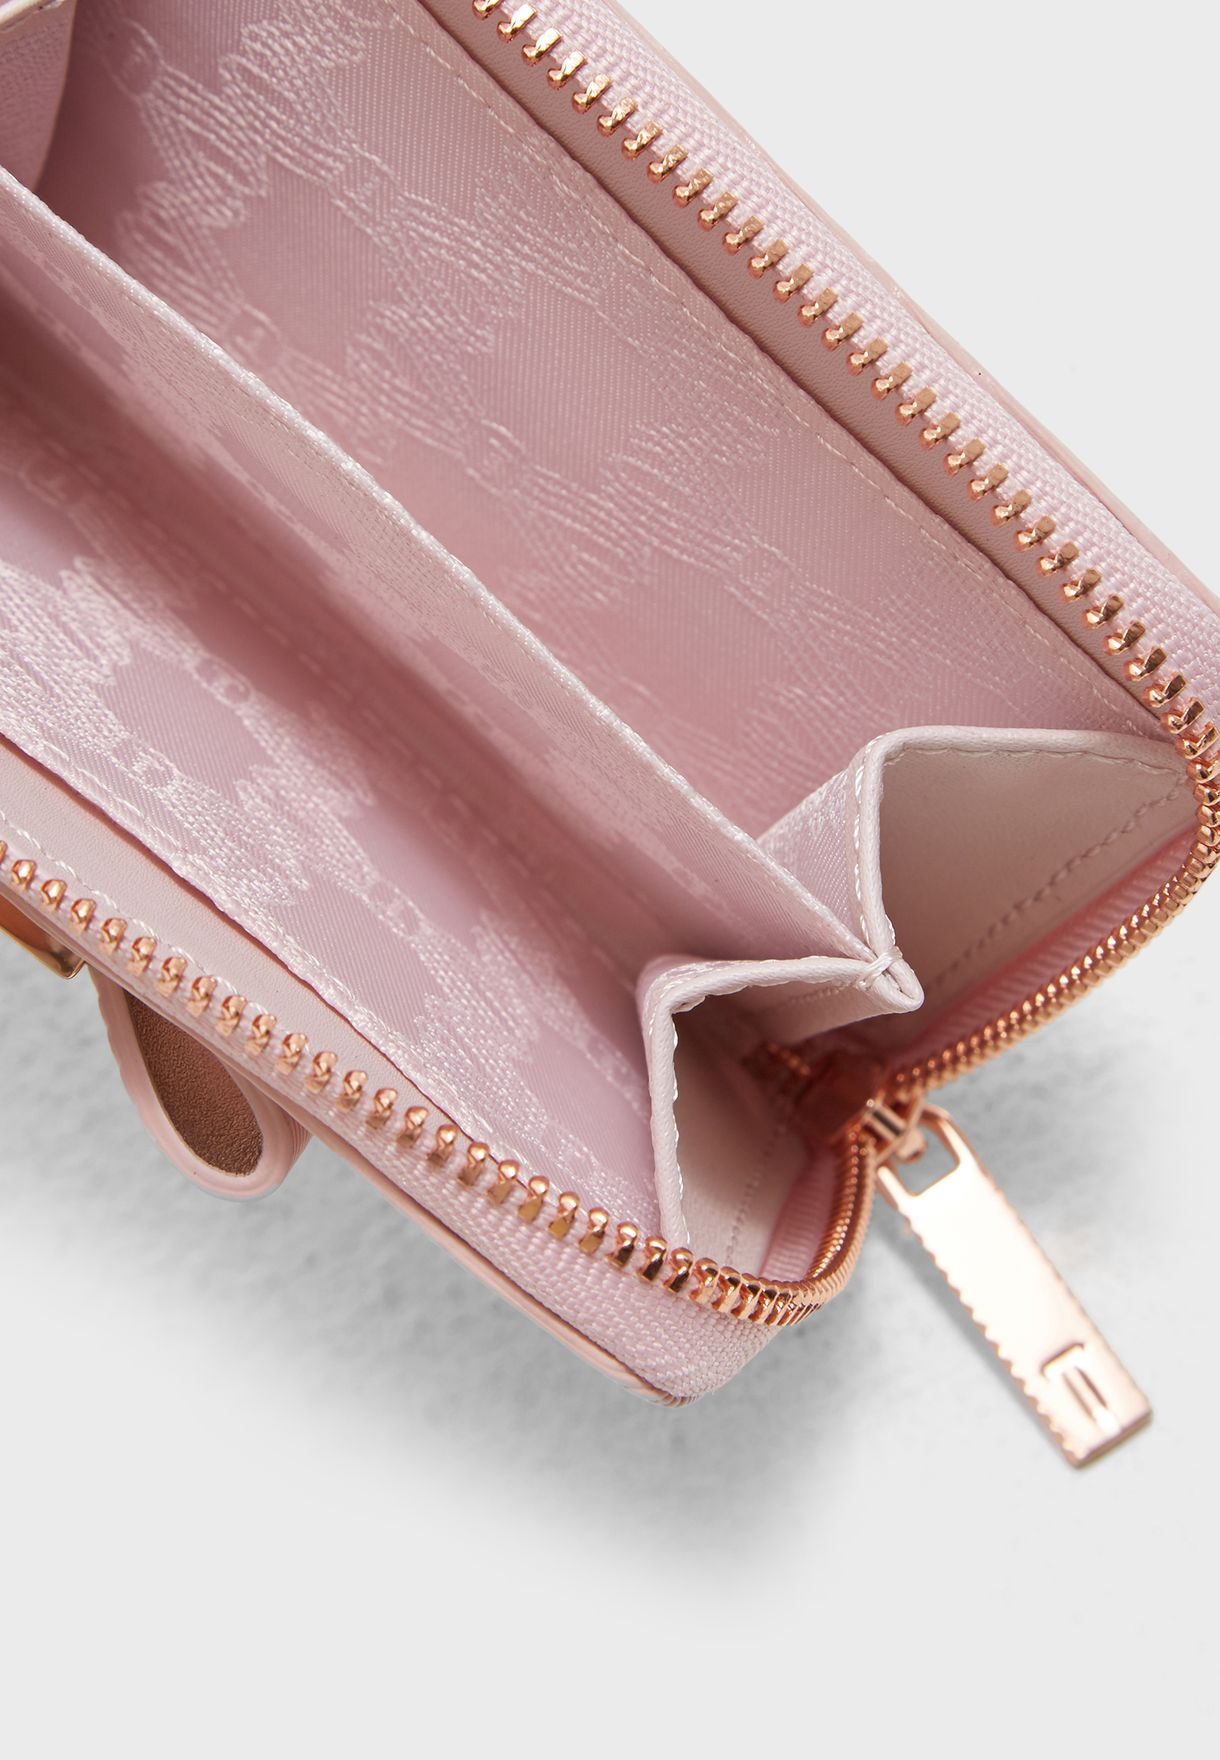 16cb1b0cdb1a73 Shop Ted baker pink Aureole Textured Small Zip Purse 147399 for ...